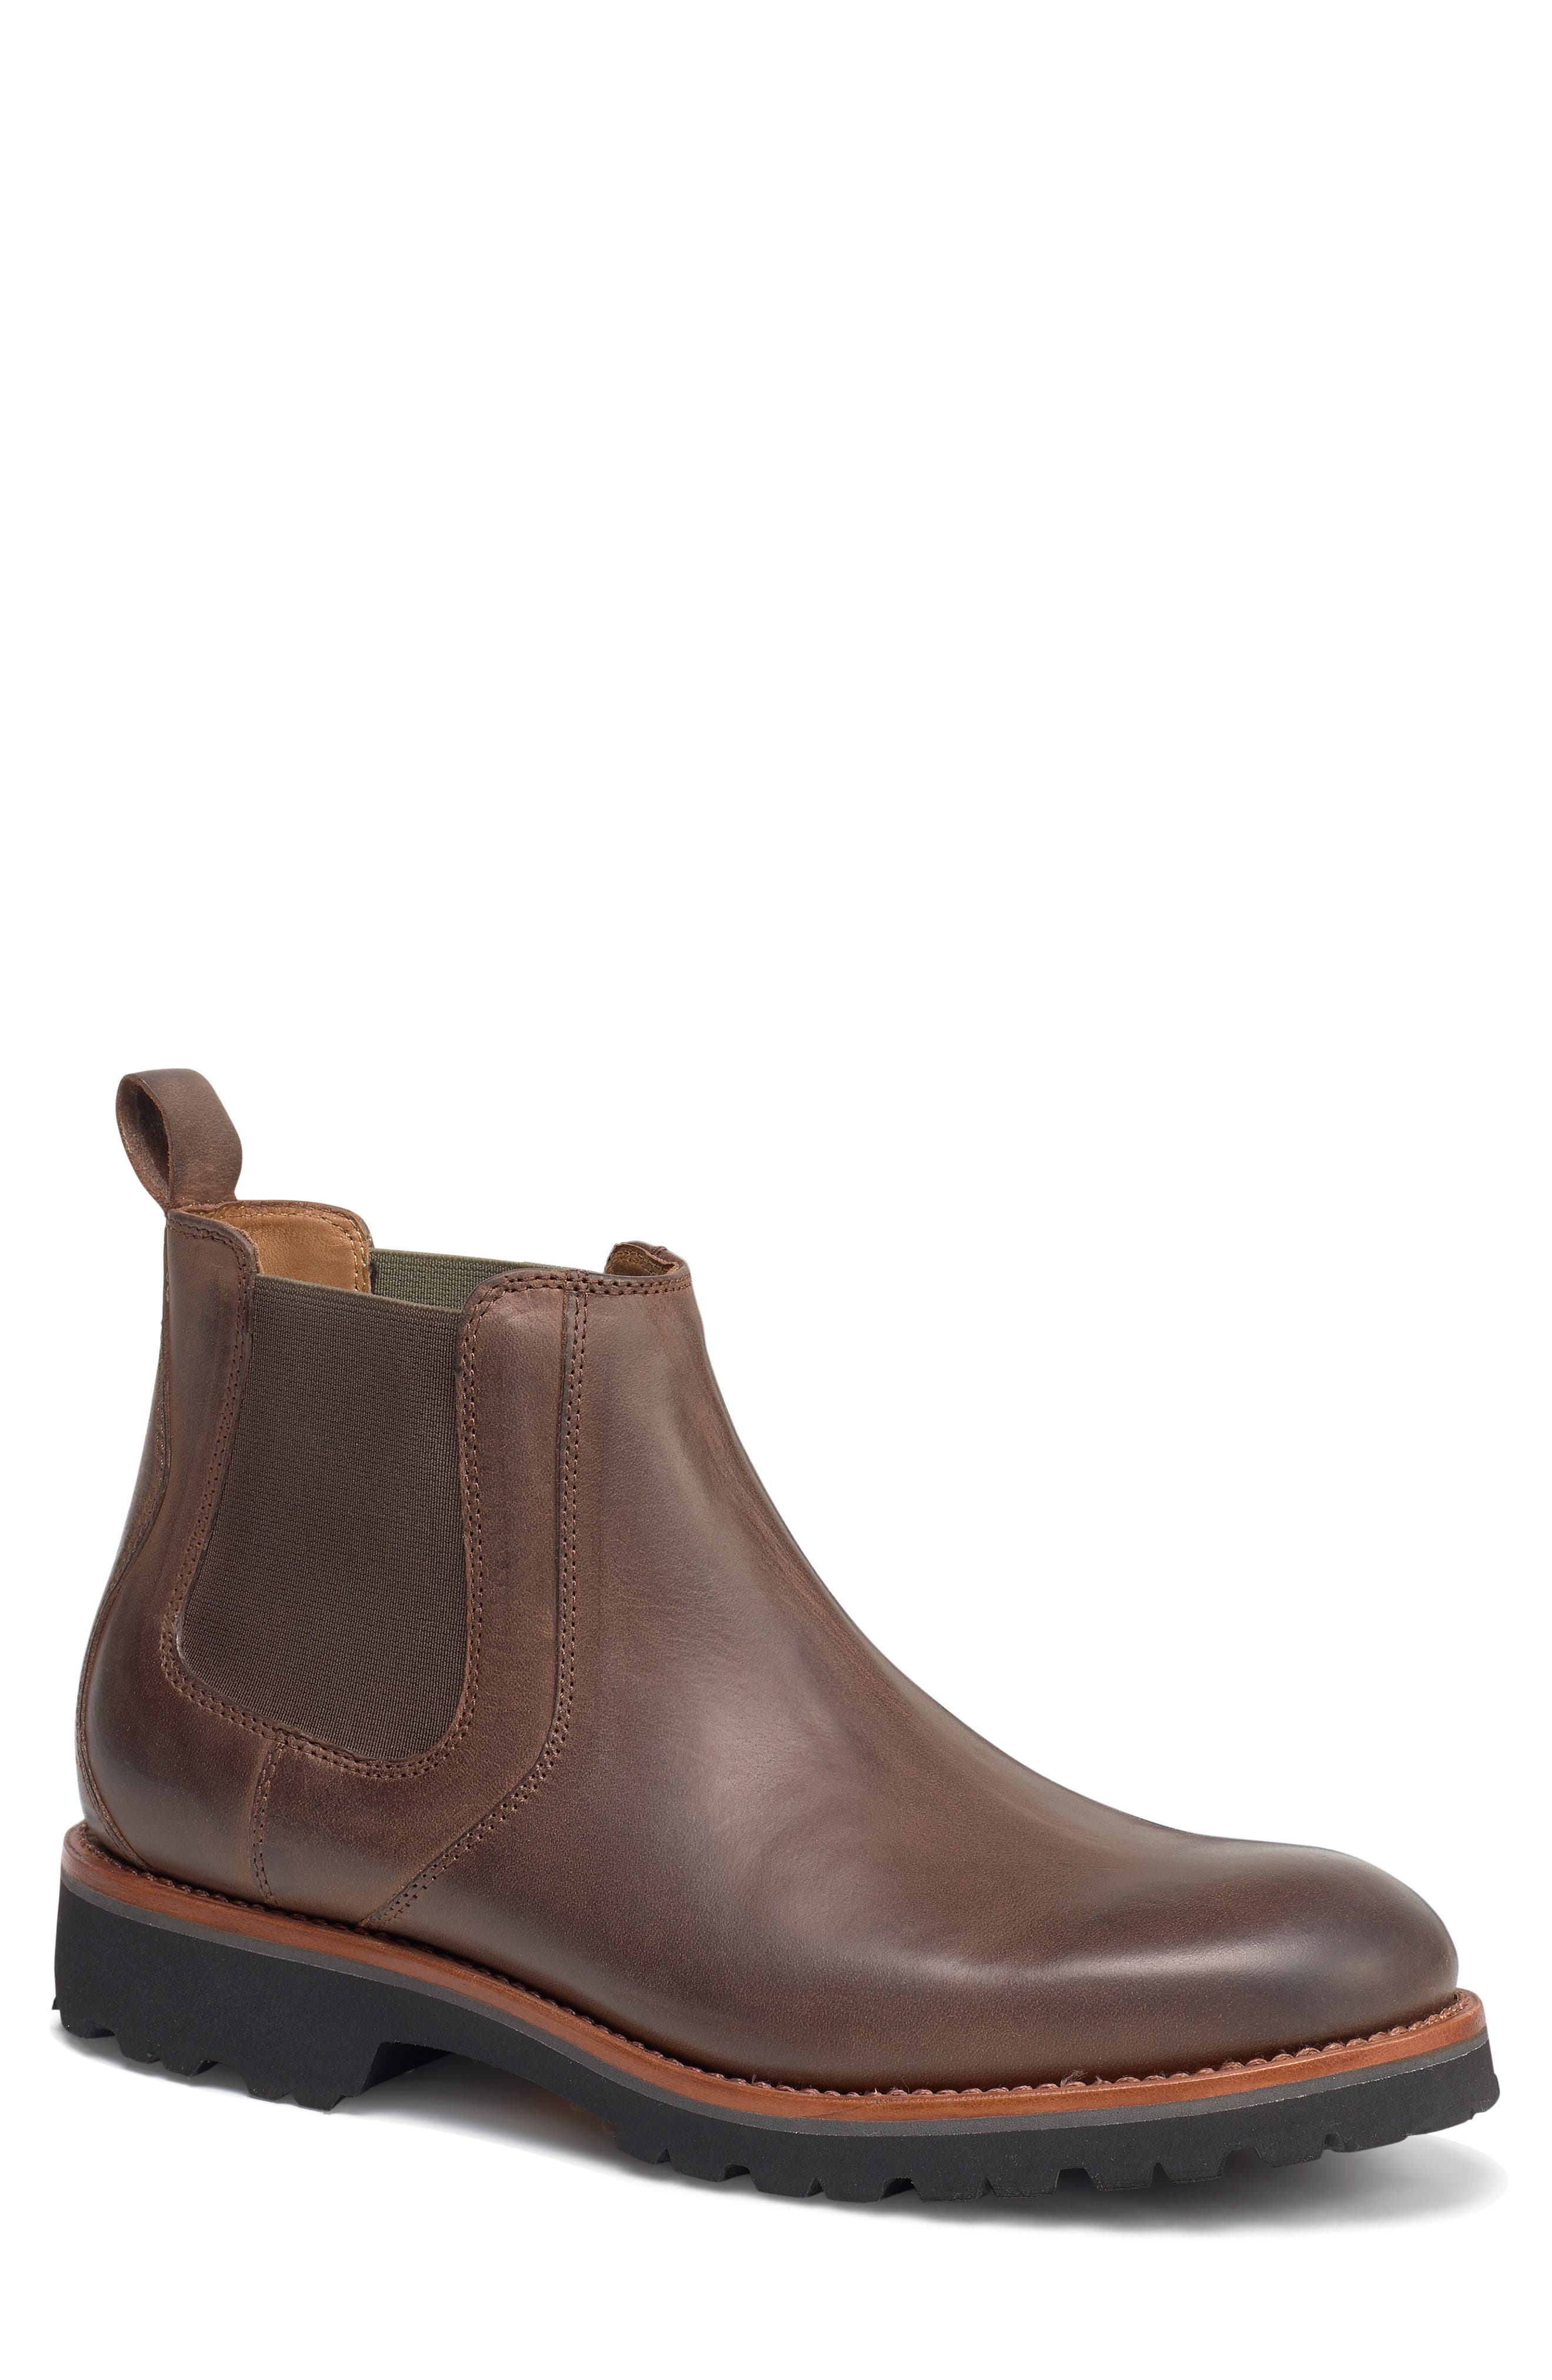 Trask Hastings Lugged Chelsea Boot- Brown